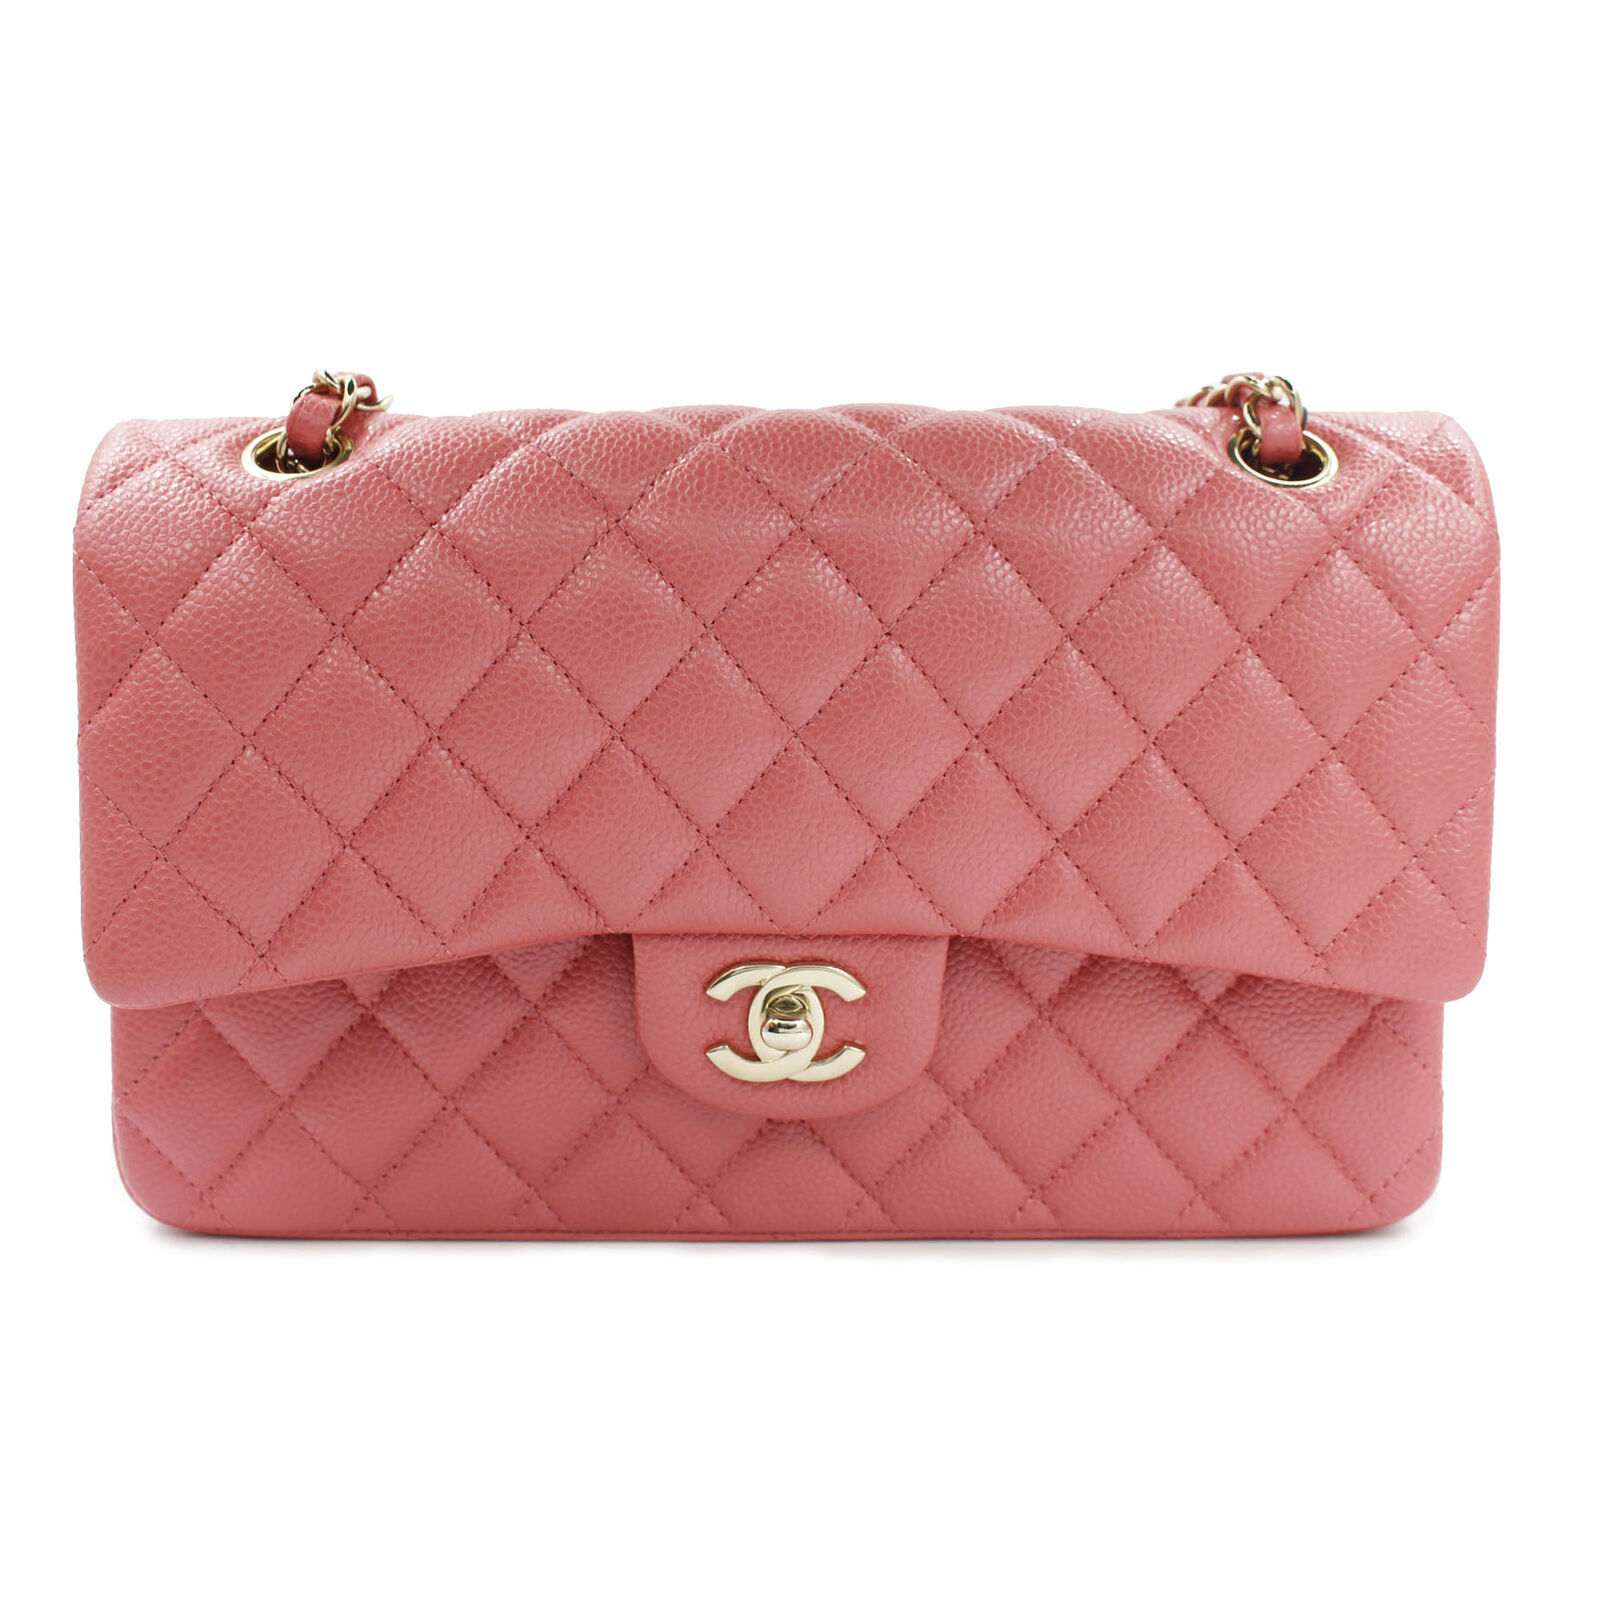 4b7ddaeb8674 Chanel Shiny Pink Quilted Caviar Medium Classic Double Flap Bag  A01112Y83470 - $6,999.00